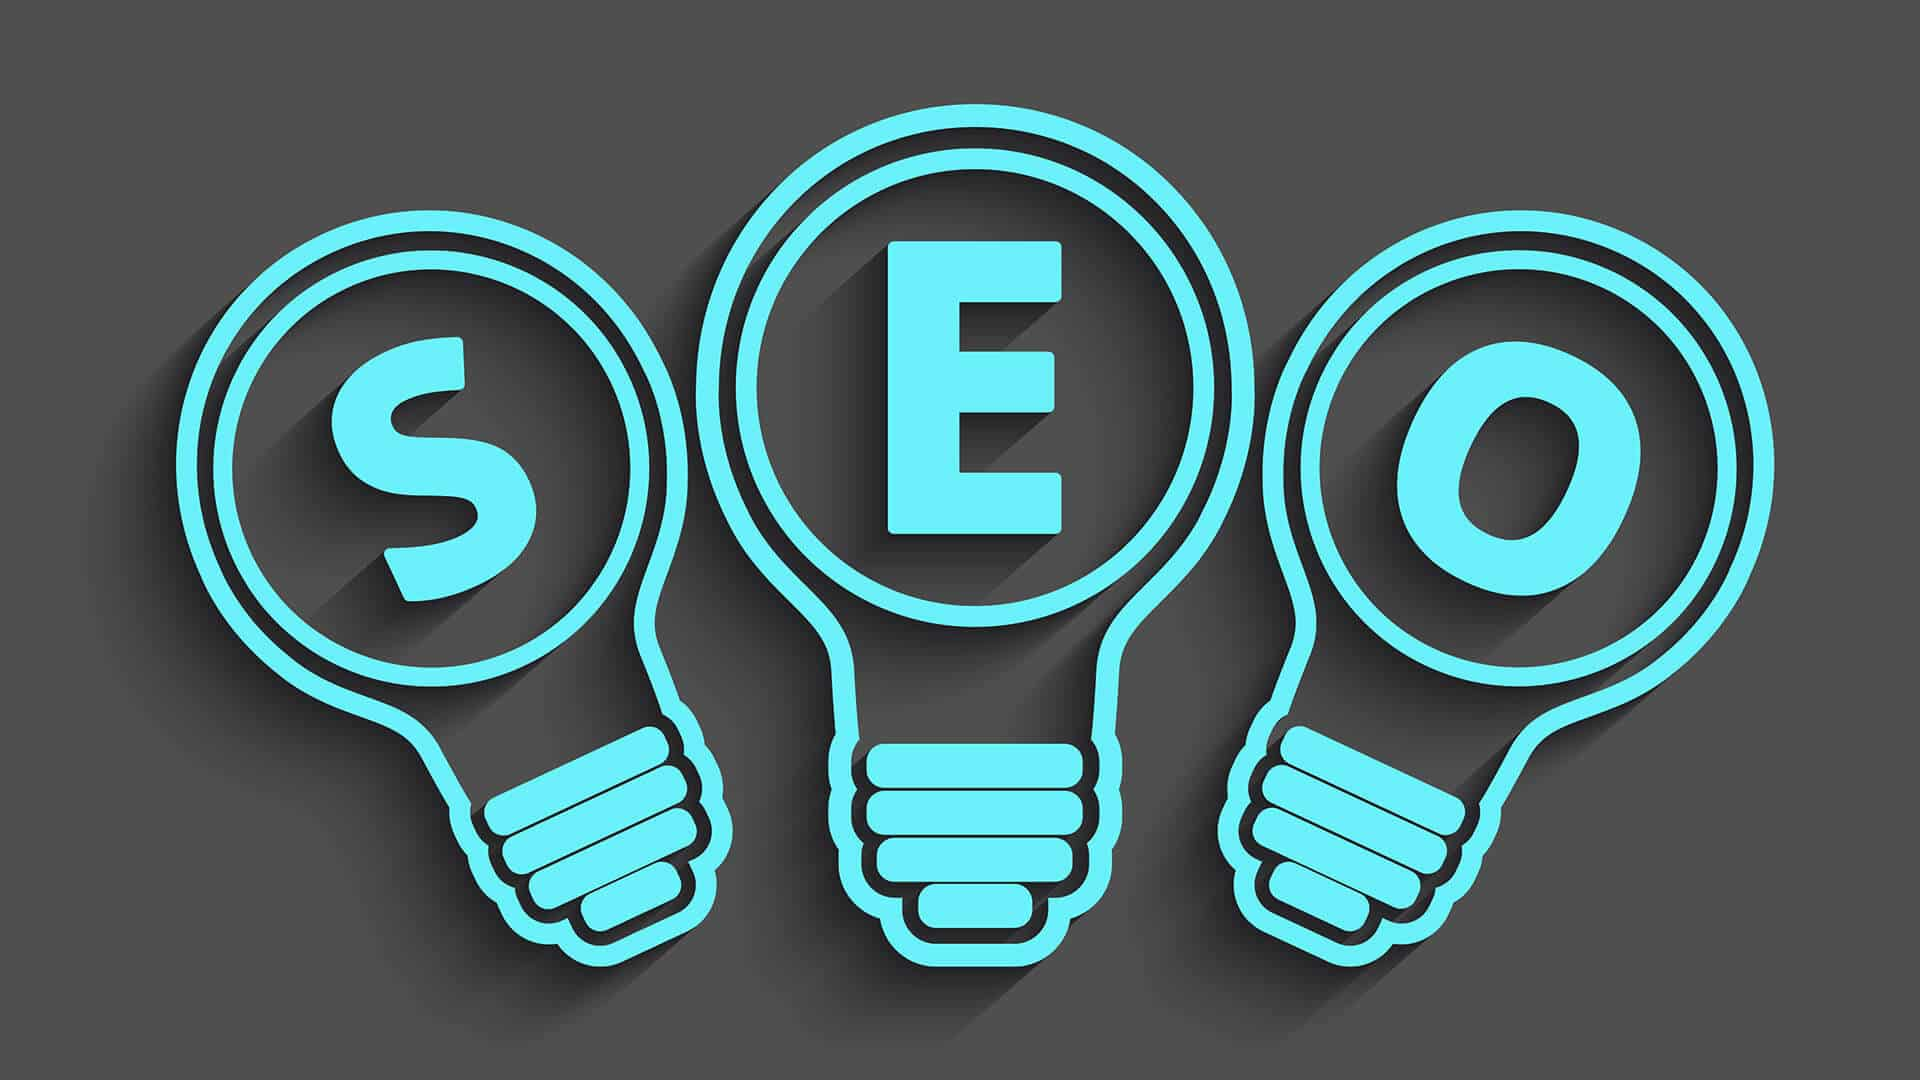 It's Going SEO, SEO - RhinoHub